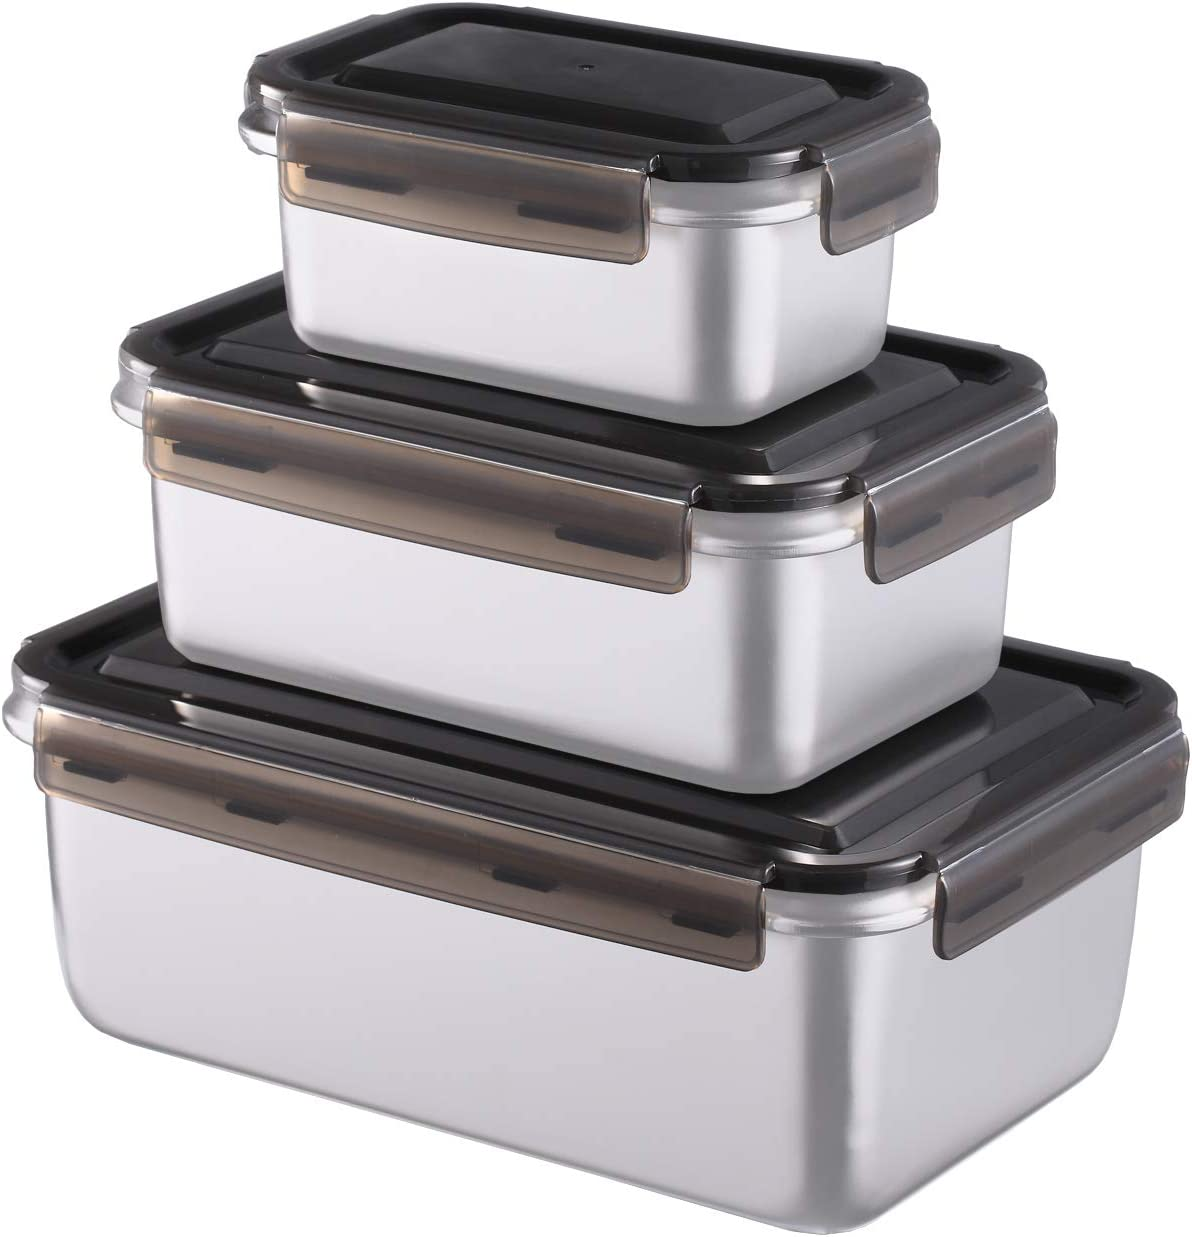 316 Medical Stainless Steel Food Containers - 4800ml Total Capacity Set of 3 Sizes Kimchi Storage Lunch Box with Sealed Lid - Freezer & Dishwasher Safe - for Salad, Sandwich, Pickles, Picnic, Camping